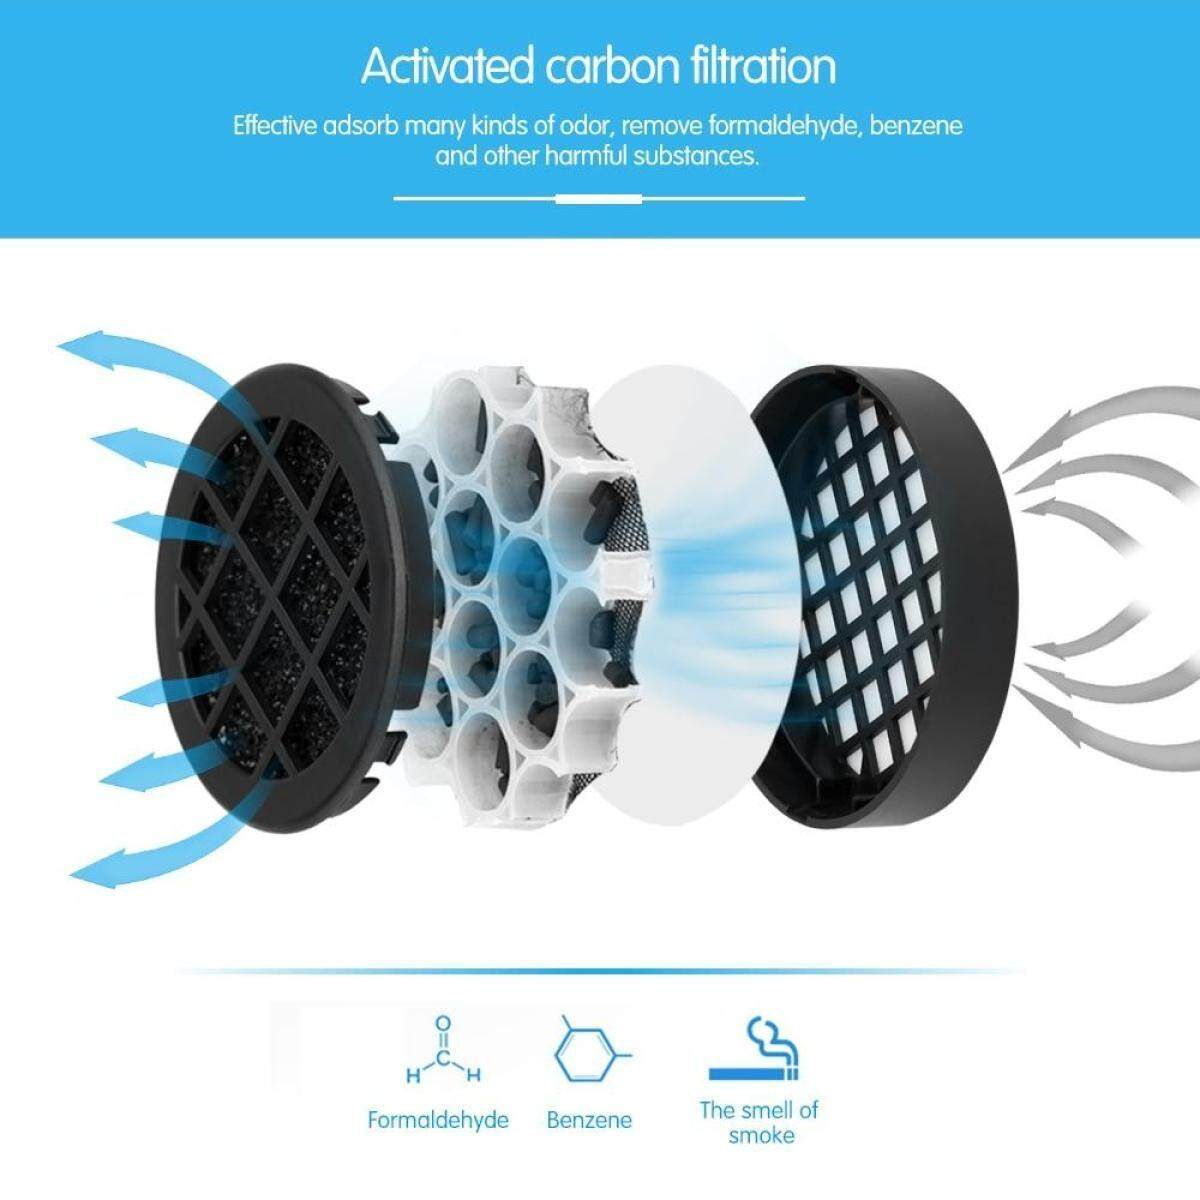 1PC HEPA Filter for Car Air Purifier Replacement Filter Cleaning Parts Activated Carbon Filters Set